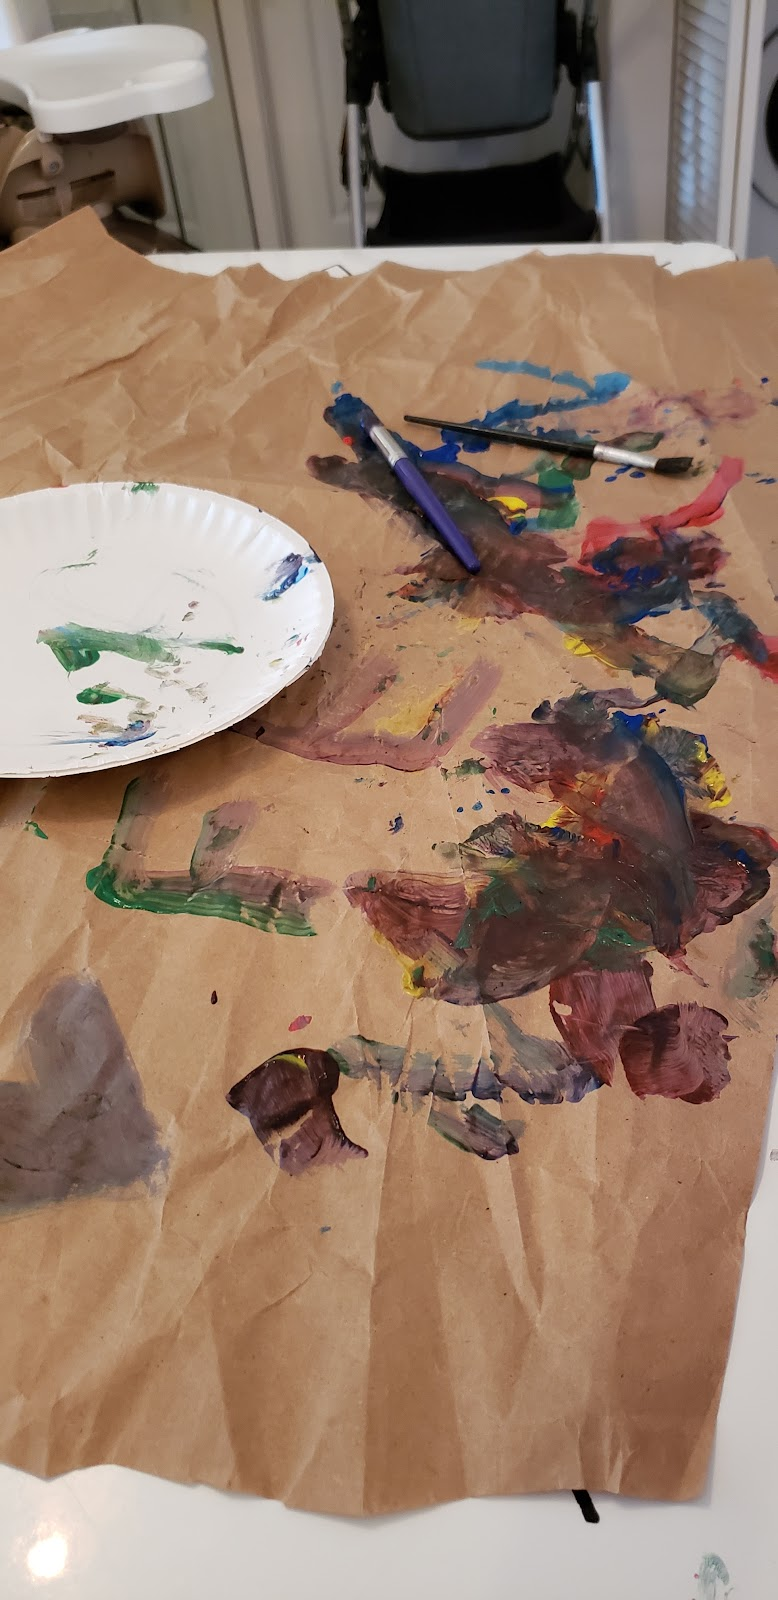 A toddler's painting on some brown paper. The letters F and E are present